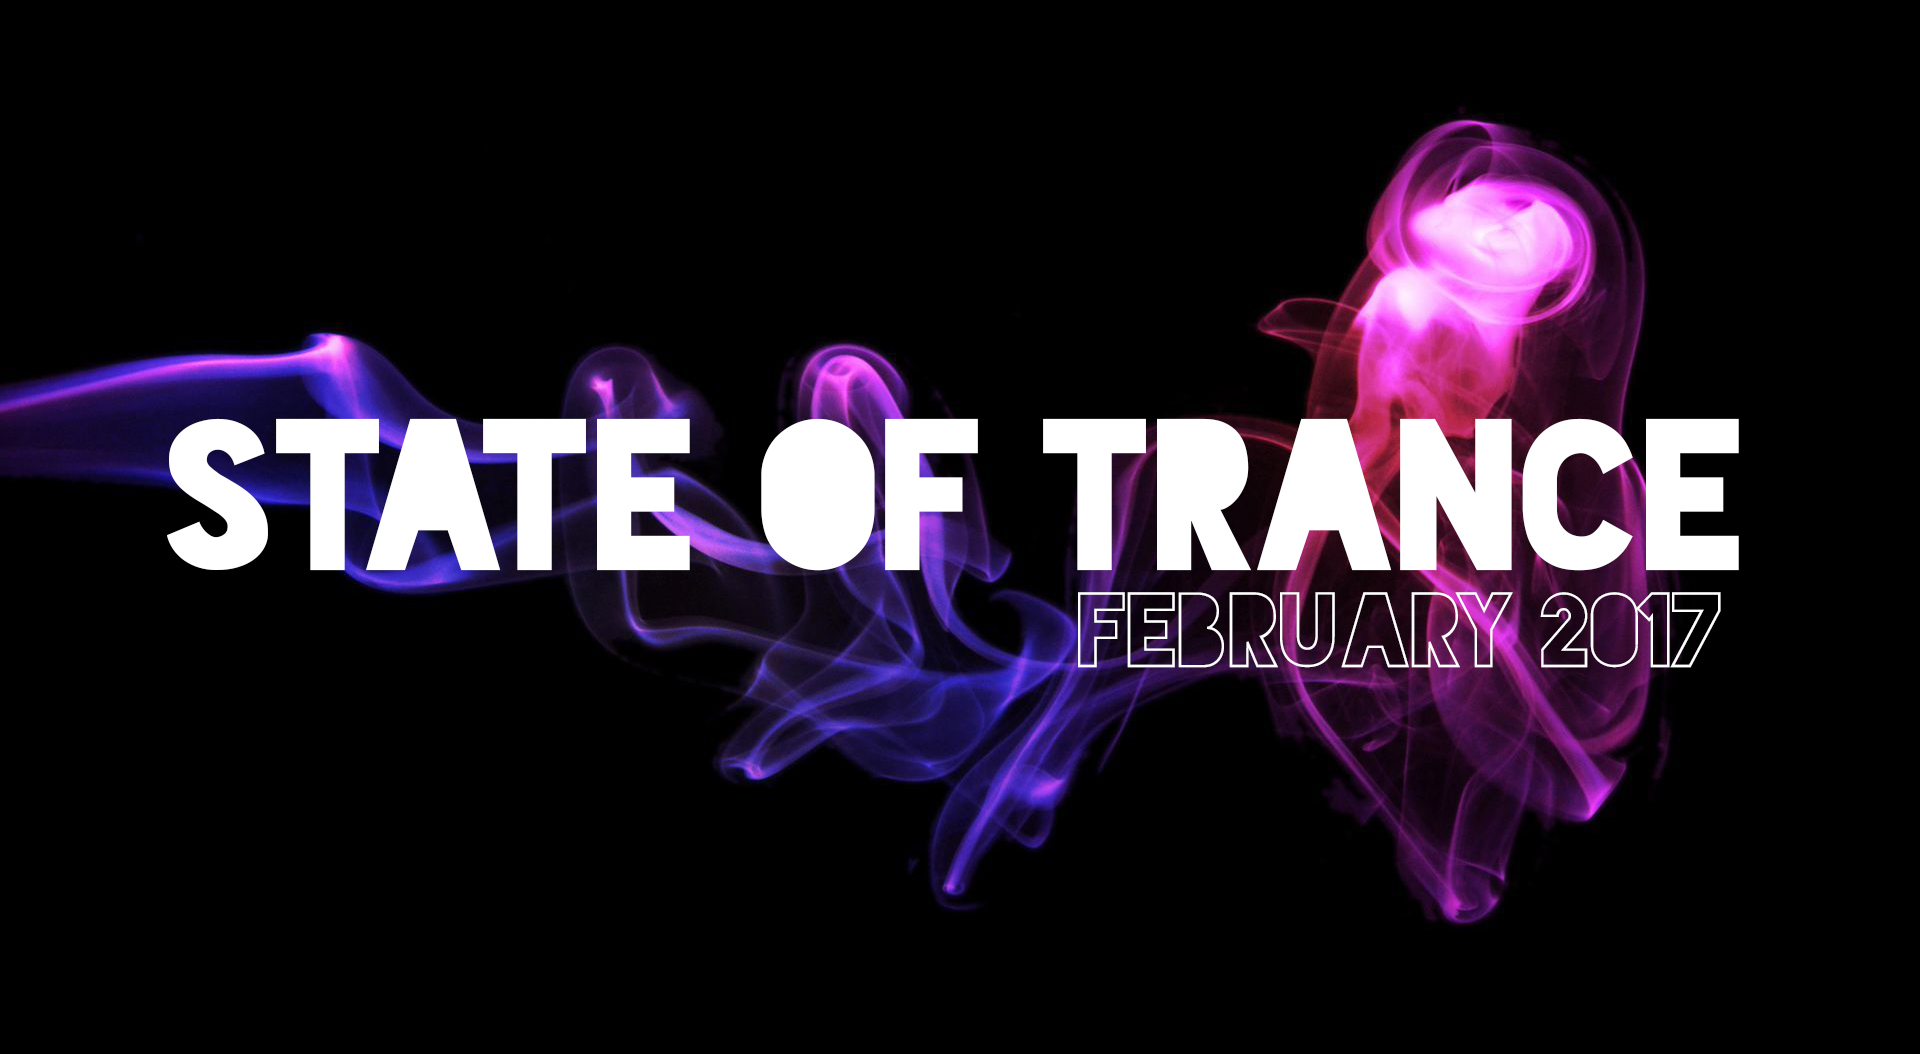 [TRANCE] Here Are The Top 10 Trance Tracks For February 2017